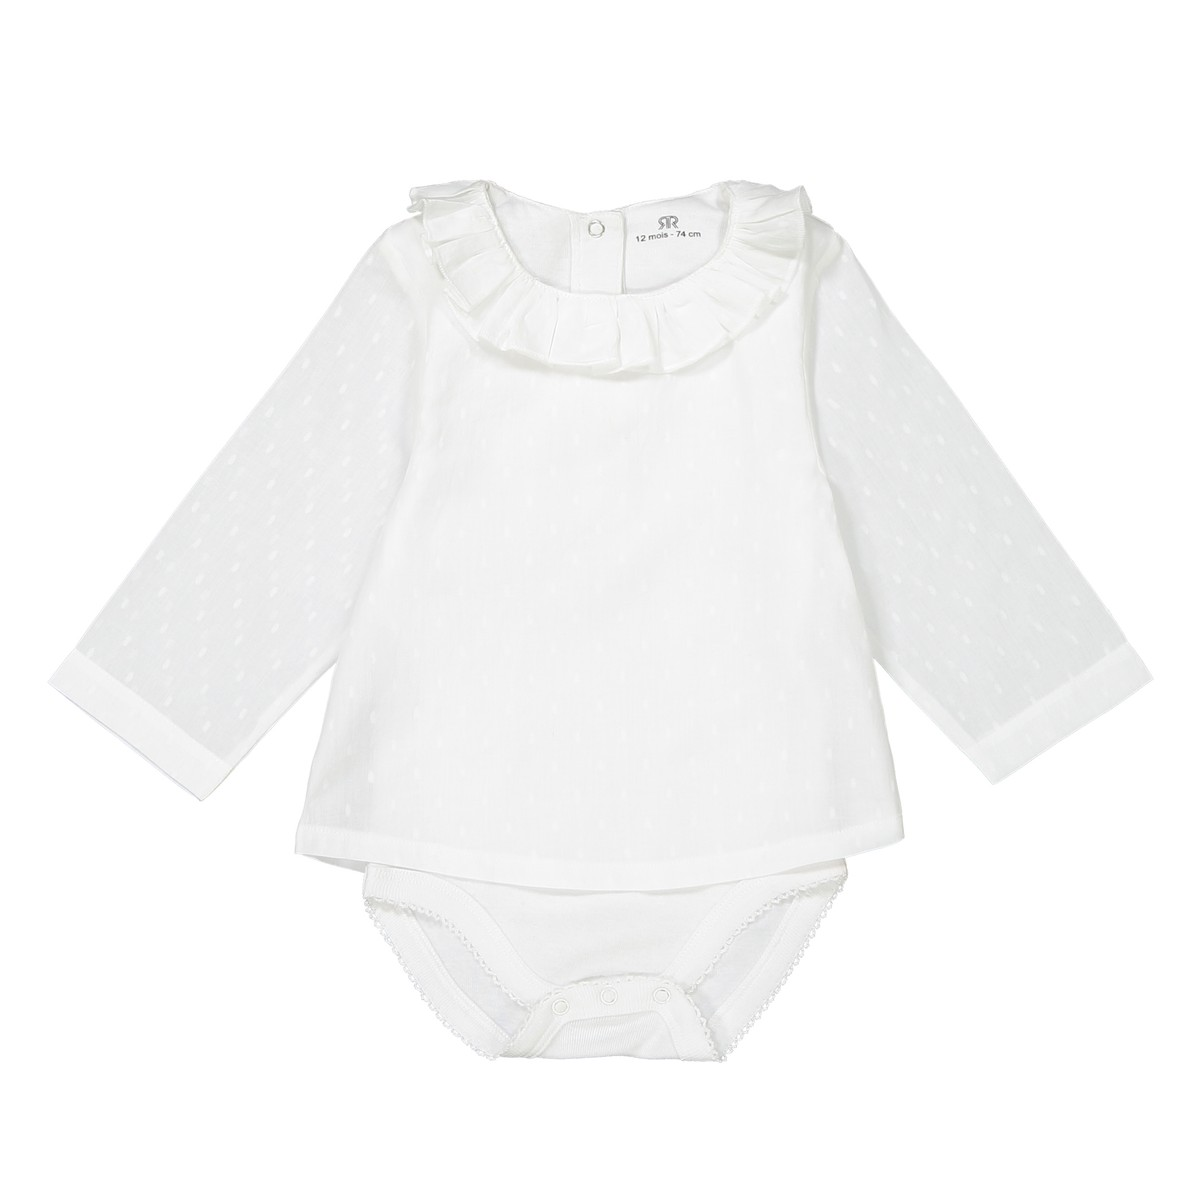 white-bodysuit-with-ruffle-collar